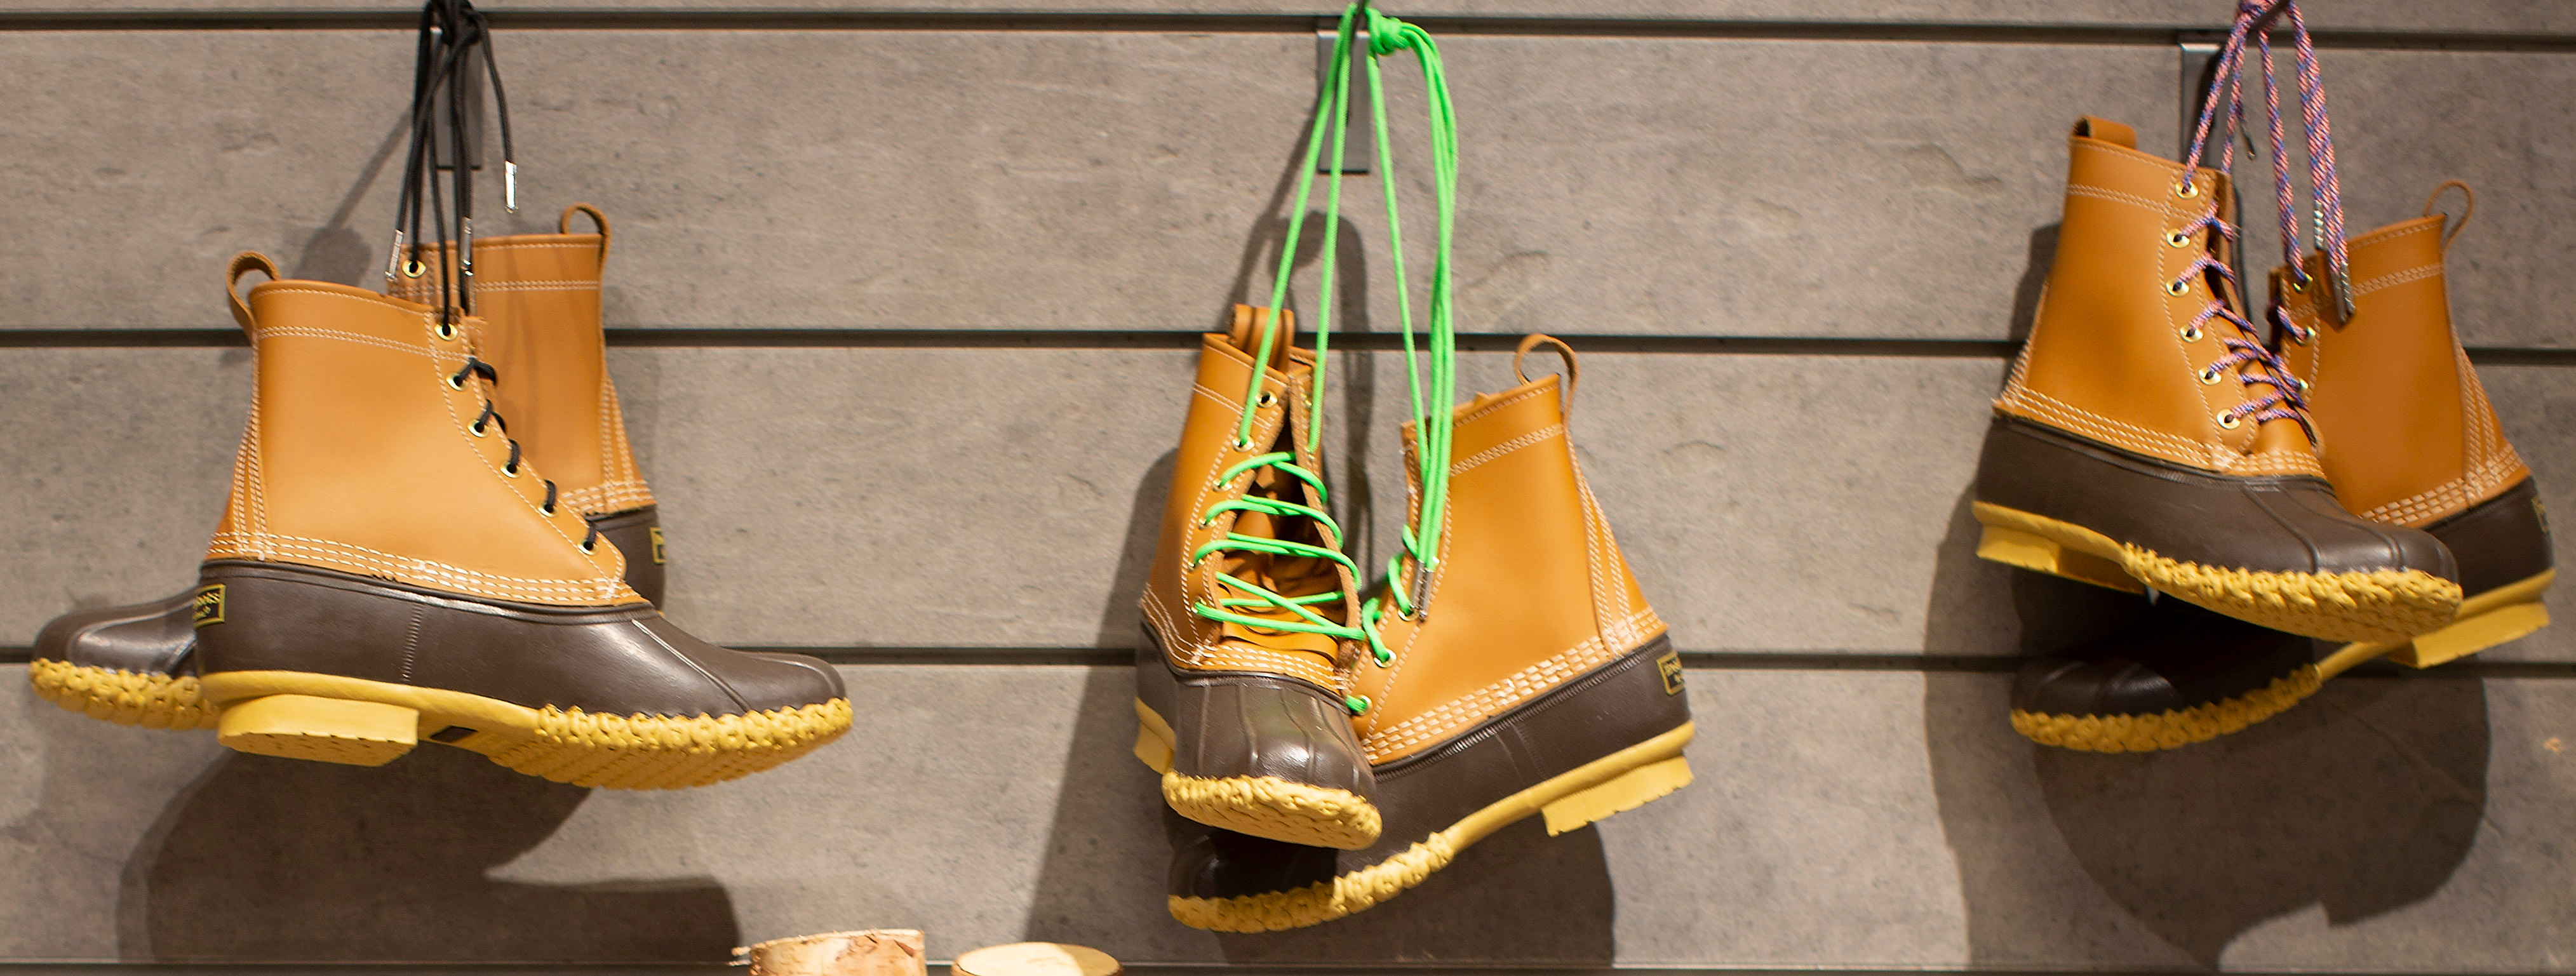 Signature 'Bean Boots' on display at the newly opened L.L. Bean location in the Seaport district of Boston, Massachusetts, USA 04 April 2018. Despite having to lay off approximately 100 employees due to slow sales earlier this year, this is the first urban located storefront for the 106 year old company. L.L. Bean officially opens the location on 06 April 2018 but had a soft opening this past week.L.L. Bean in Boston, USA - 04 Apr 2018